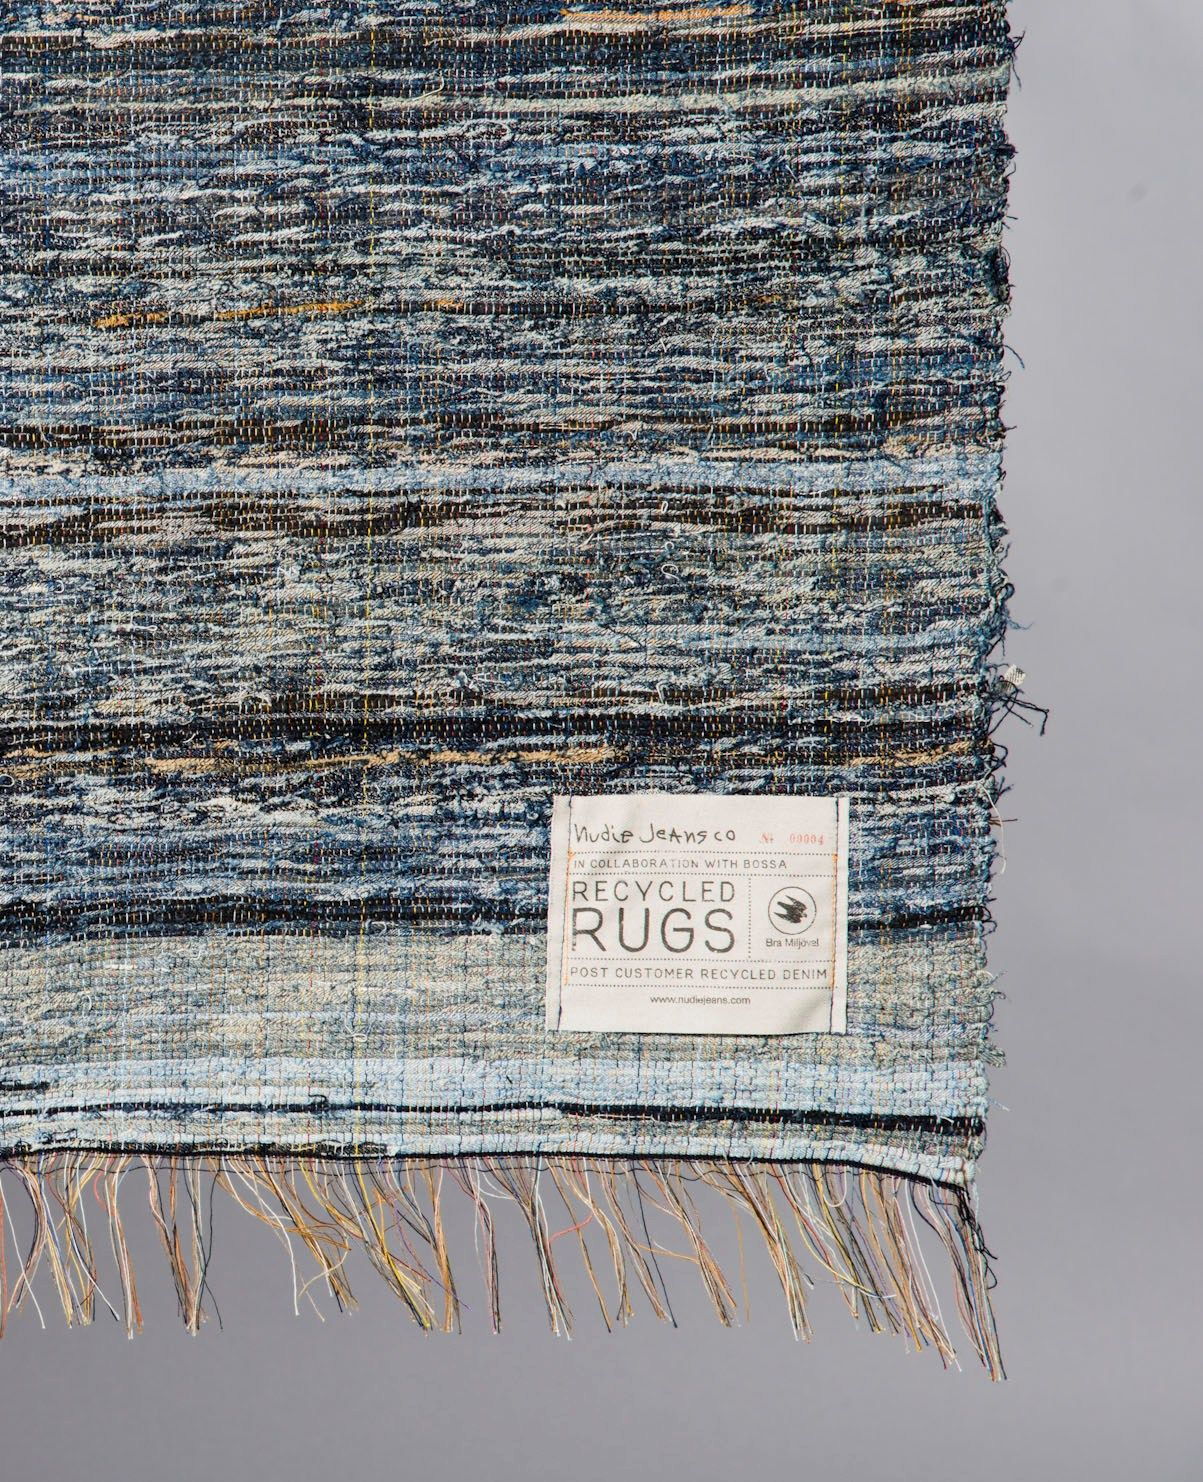 Post Recycle Rug Denim Nu Jeans Co Online Hmmmm Could I Figure Out How To Make My Own